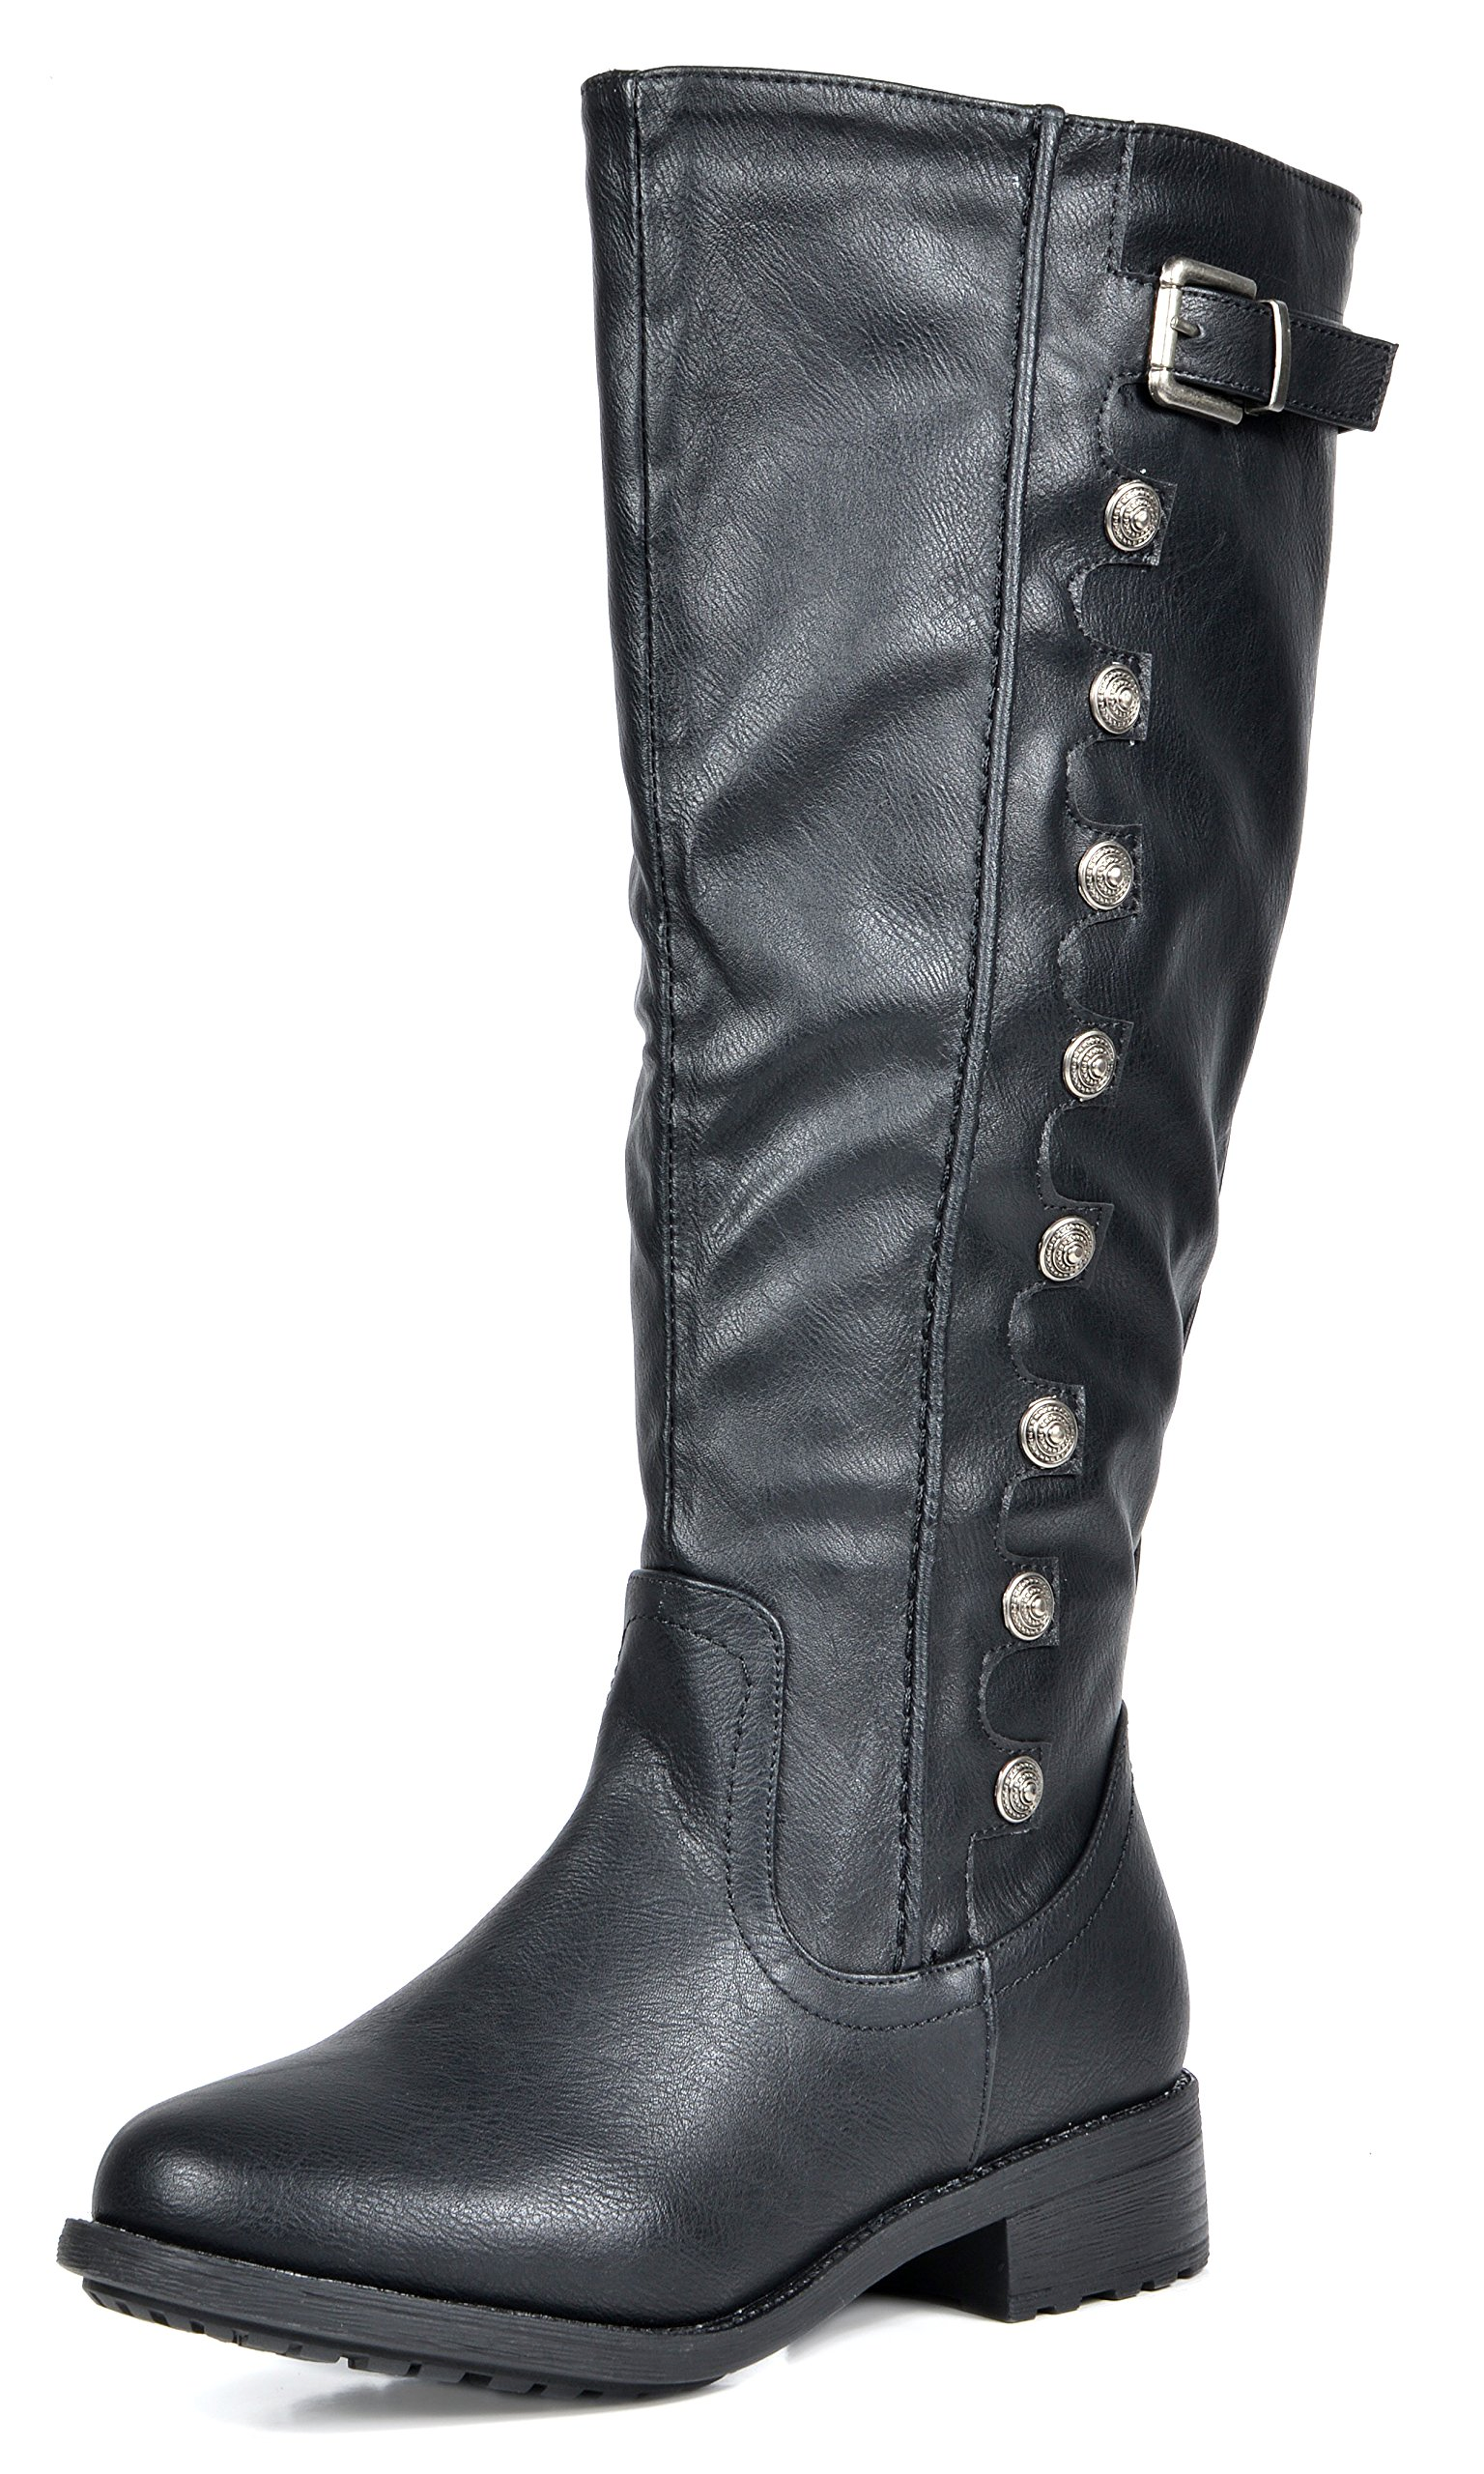 DREAM PAIRS Women's Army Black Pu Leather Knee High Winter Riding Boots Wide Calf Size 9 M US